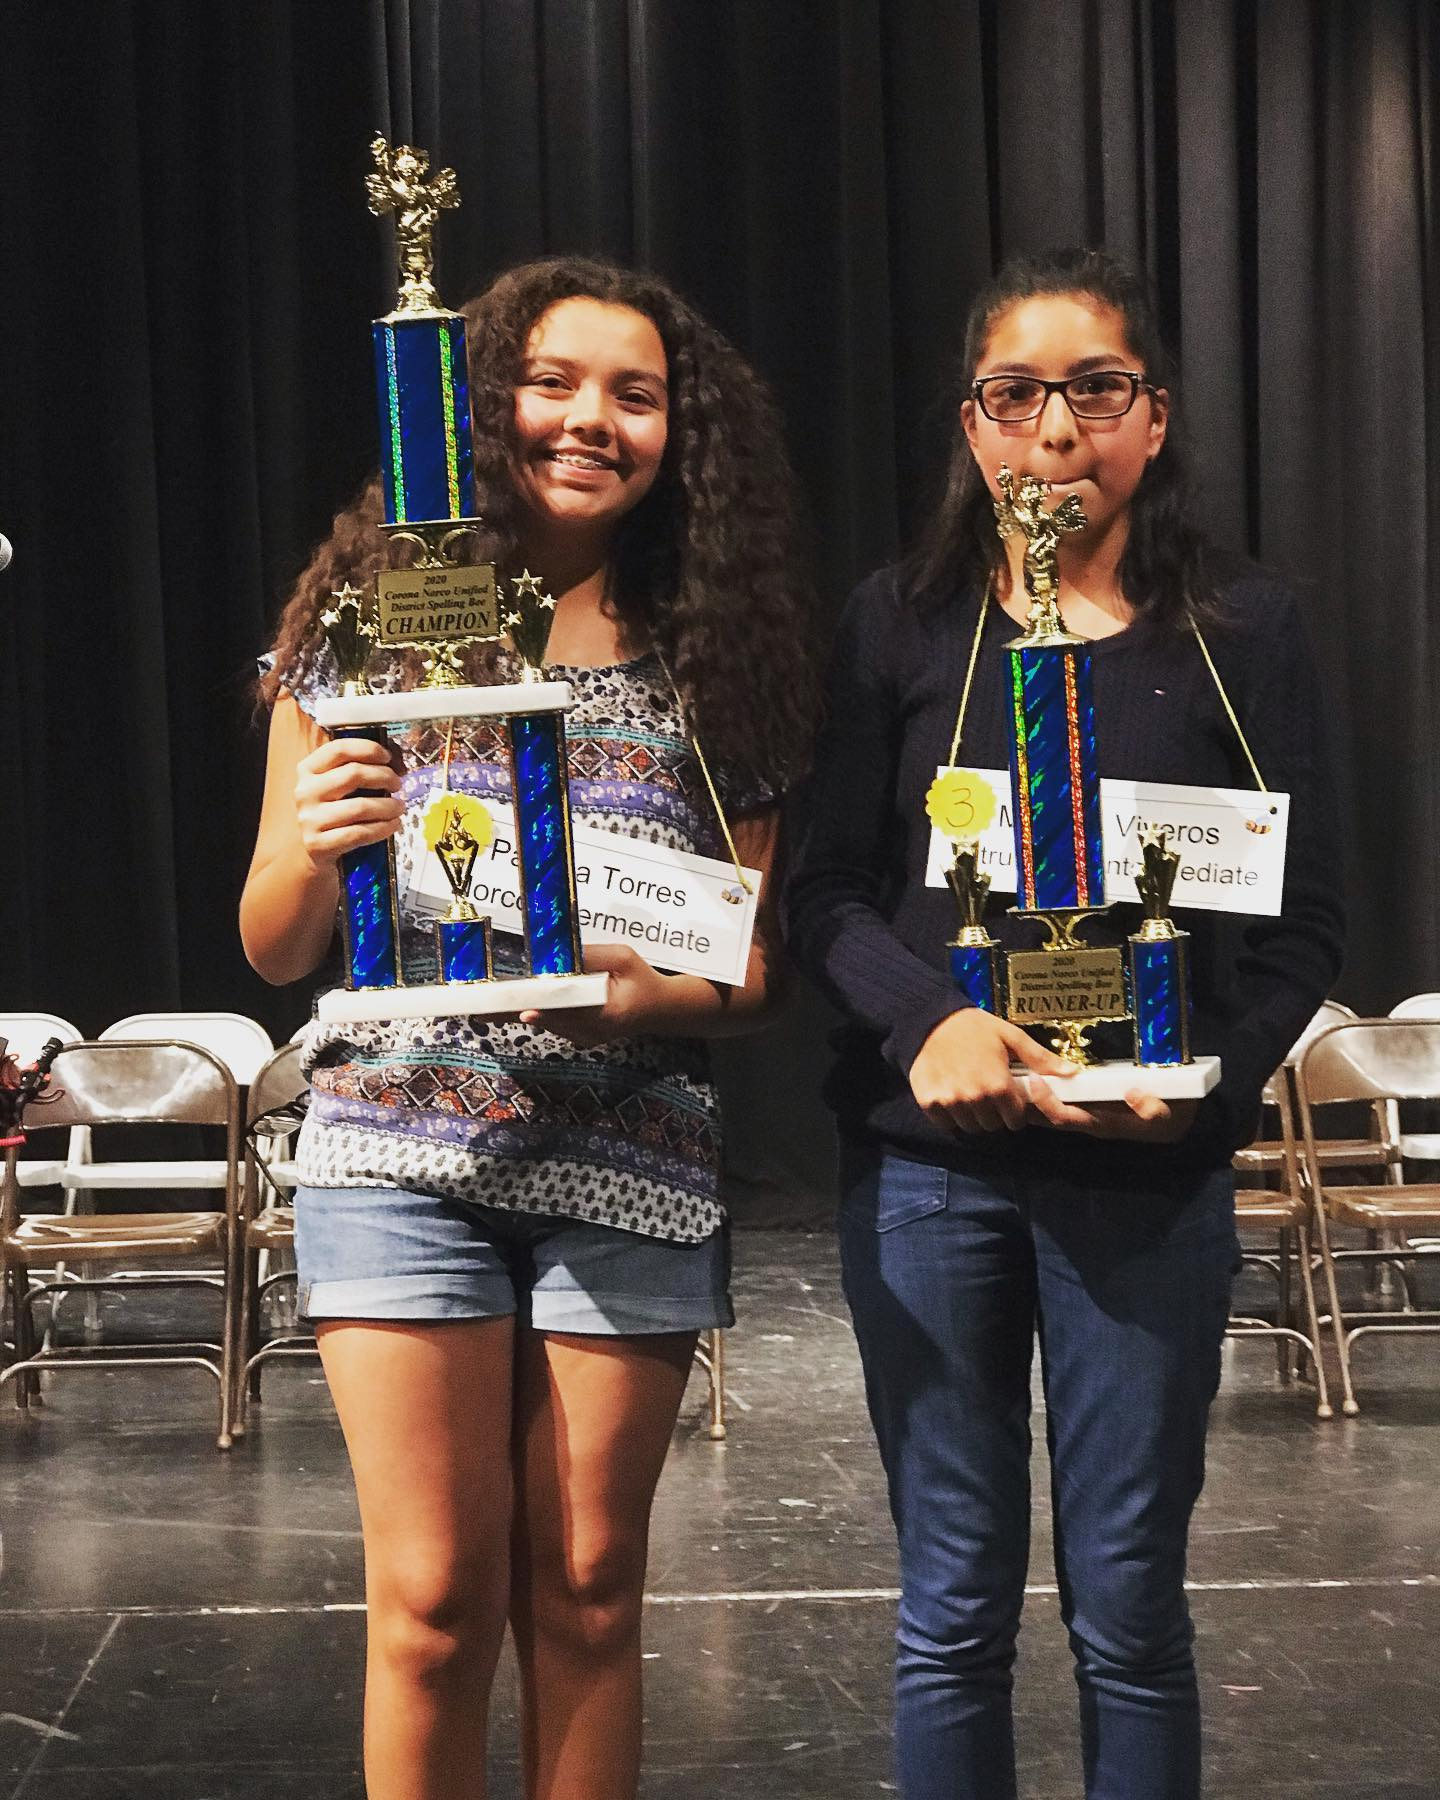 Norco Intermediate Student Wins 2020 District Spelling Bee